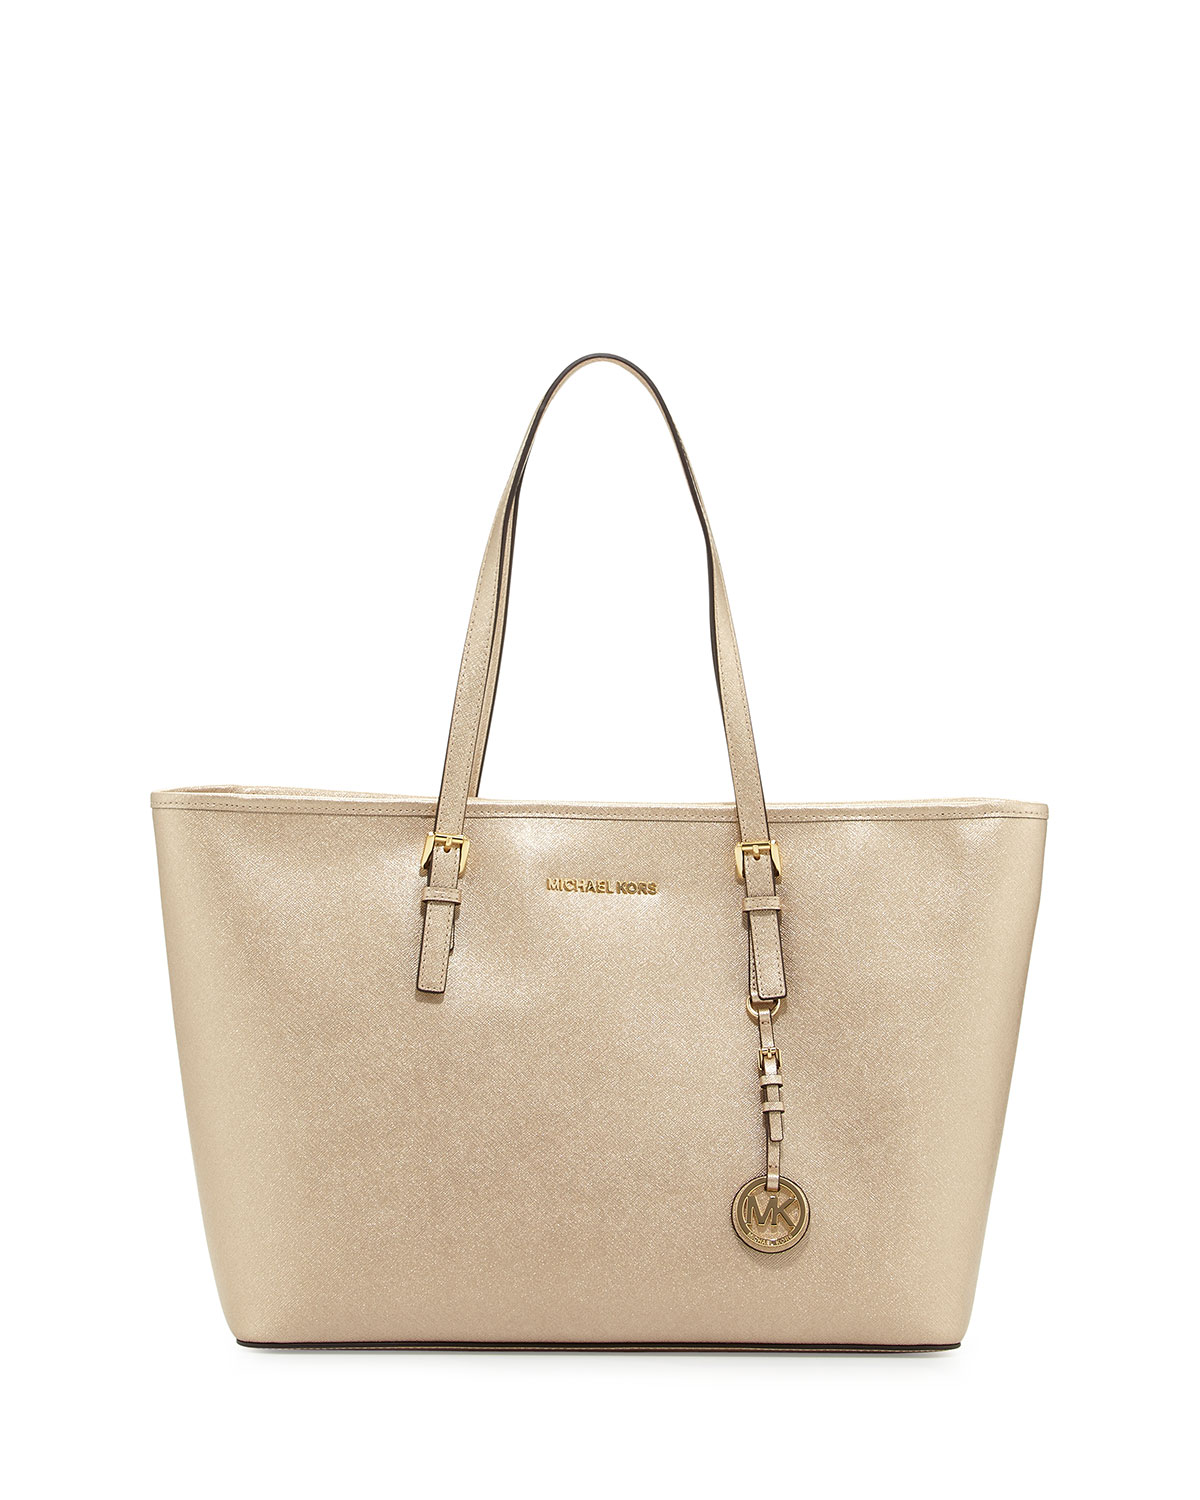 Jet Set Medium Saffiano Multi Function Tote Bag Pale Gold